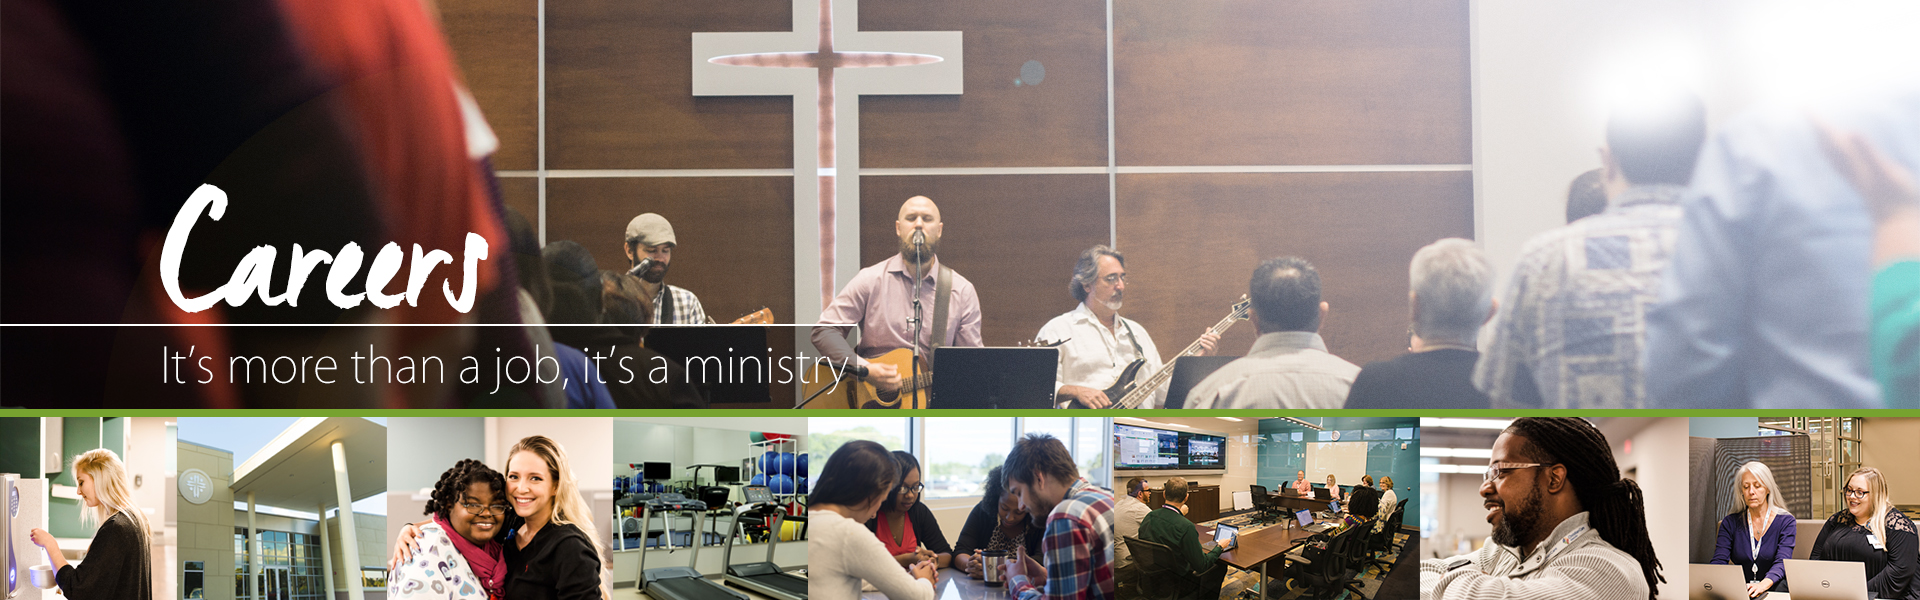 Medi-Share careers. It's more than a job, it's a ministry.